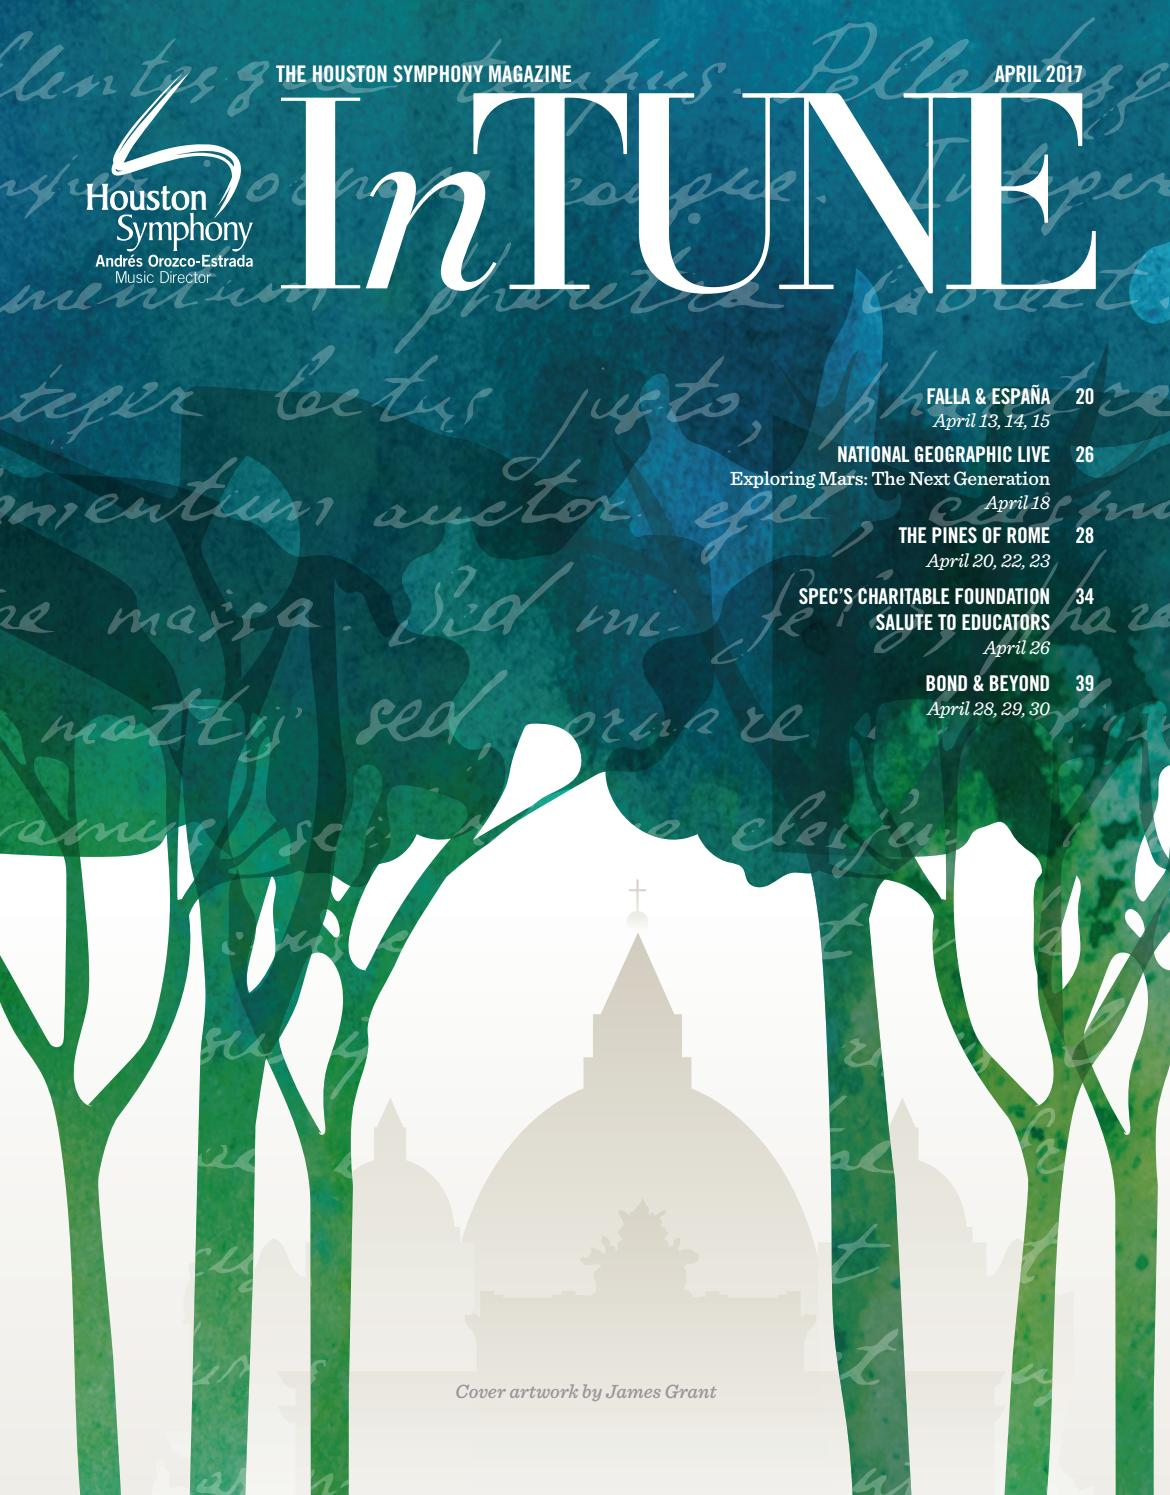 InTune The Houston Symphony Magazine April 2017 By